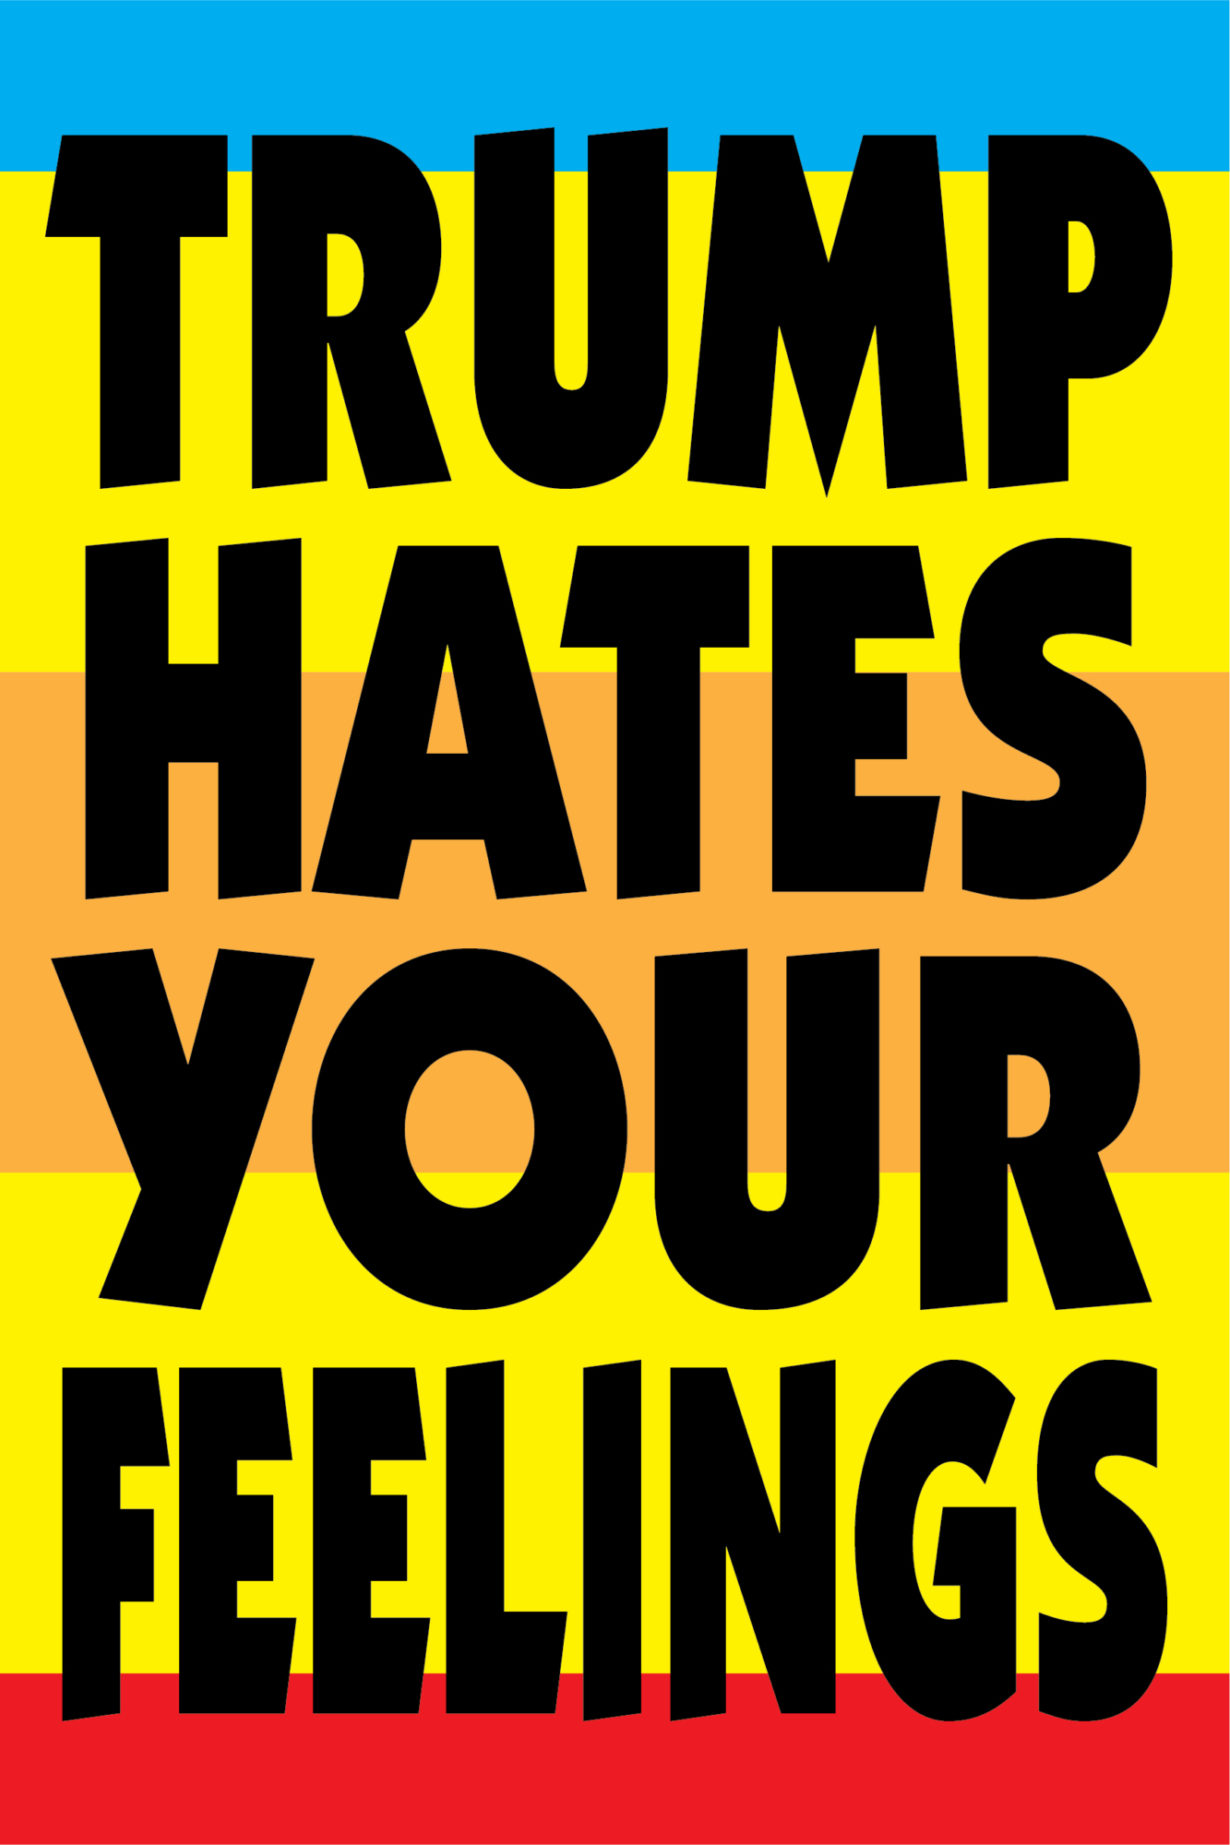 NP_51_75_2017_Trump-Hates-Your-Feelings.jpg